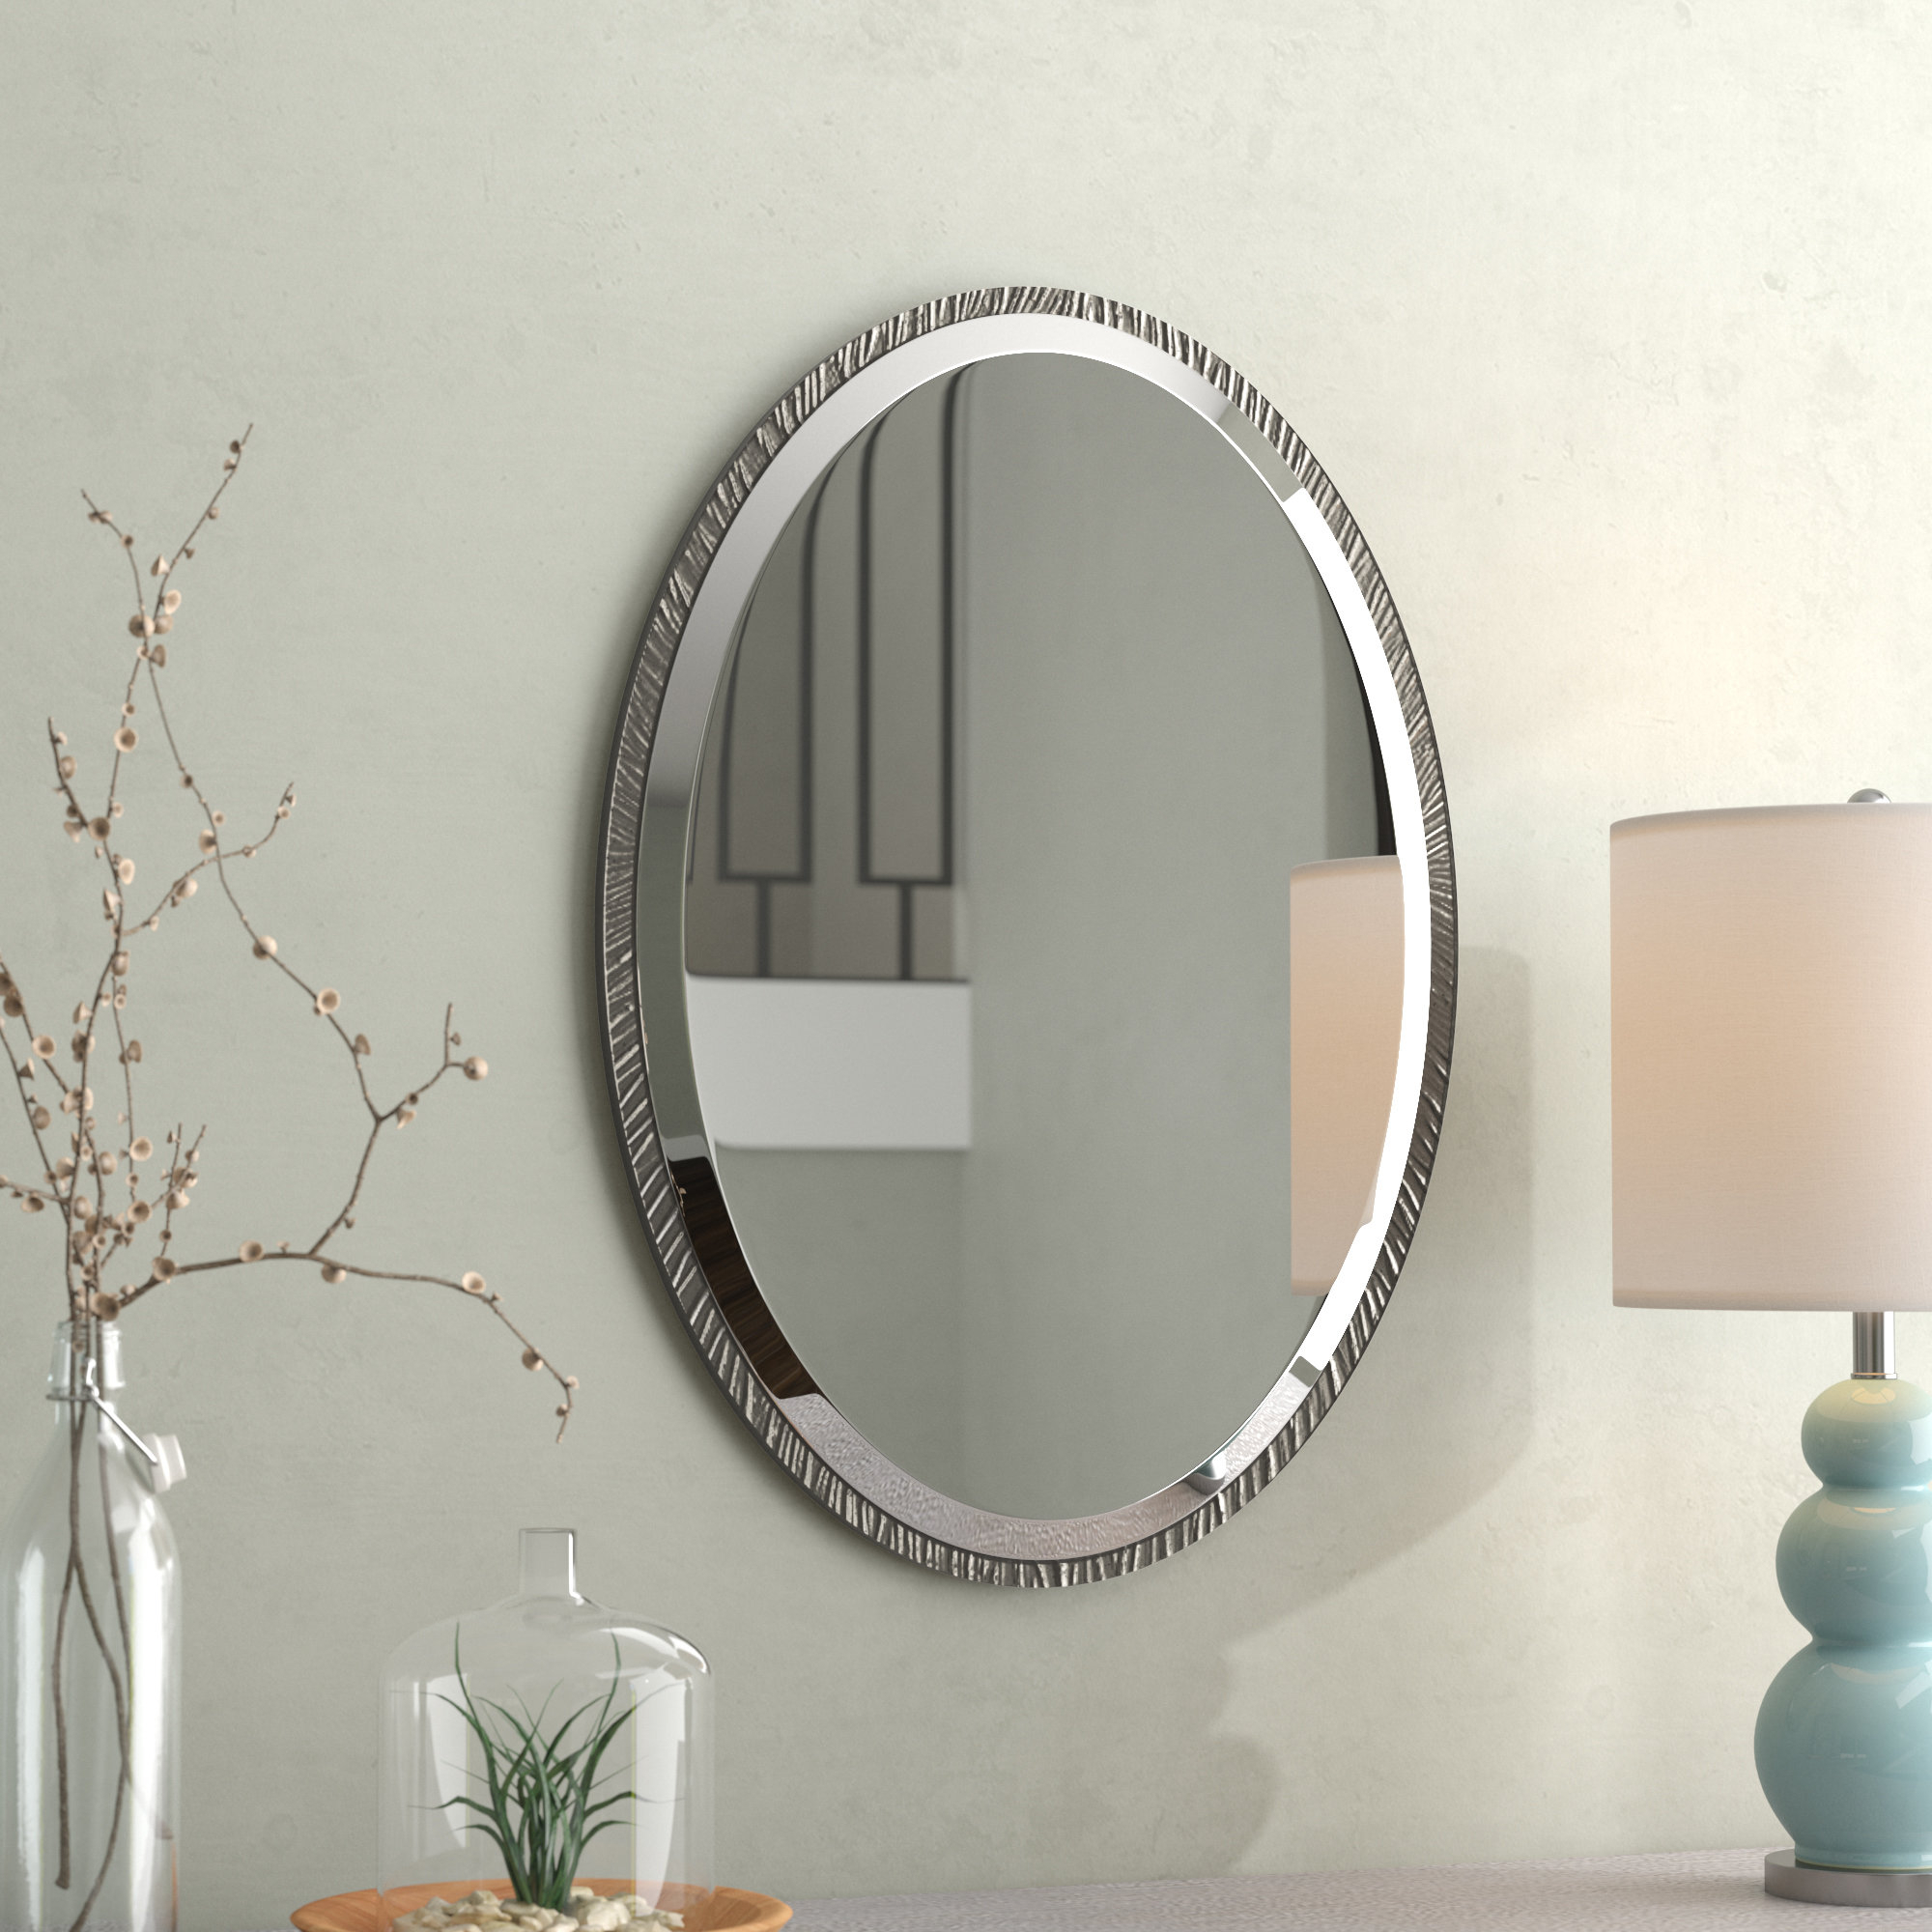 Wall Mirror With Shutters | Wayfair Pertaining To Bem Decorative Wall Mirrors (View 20 of 20)